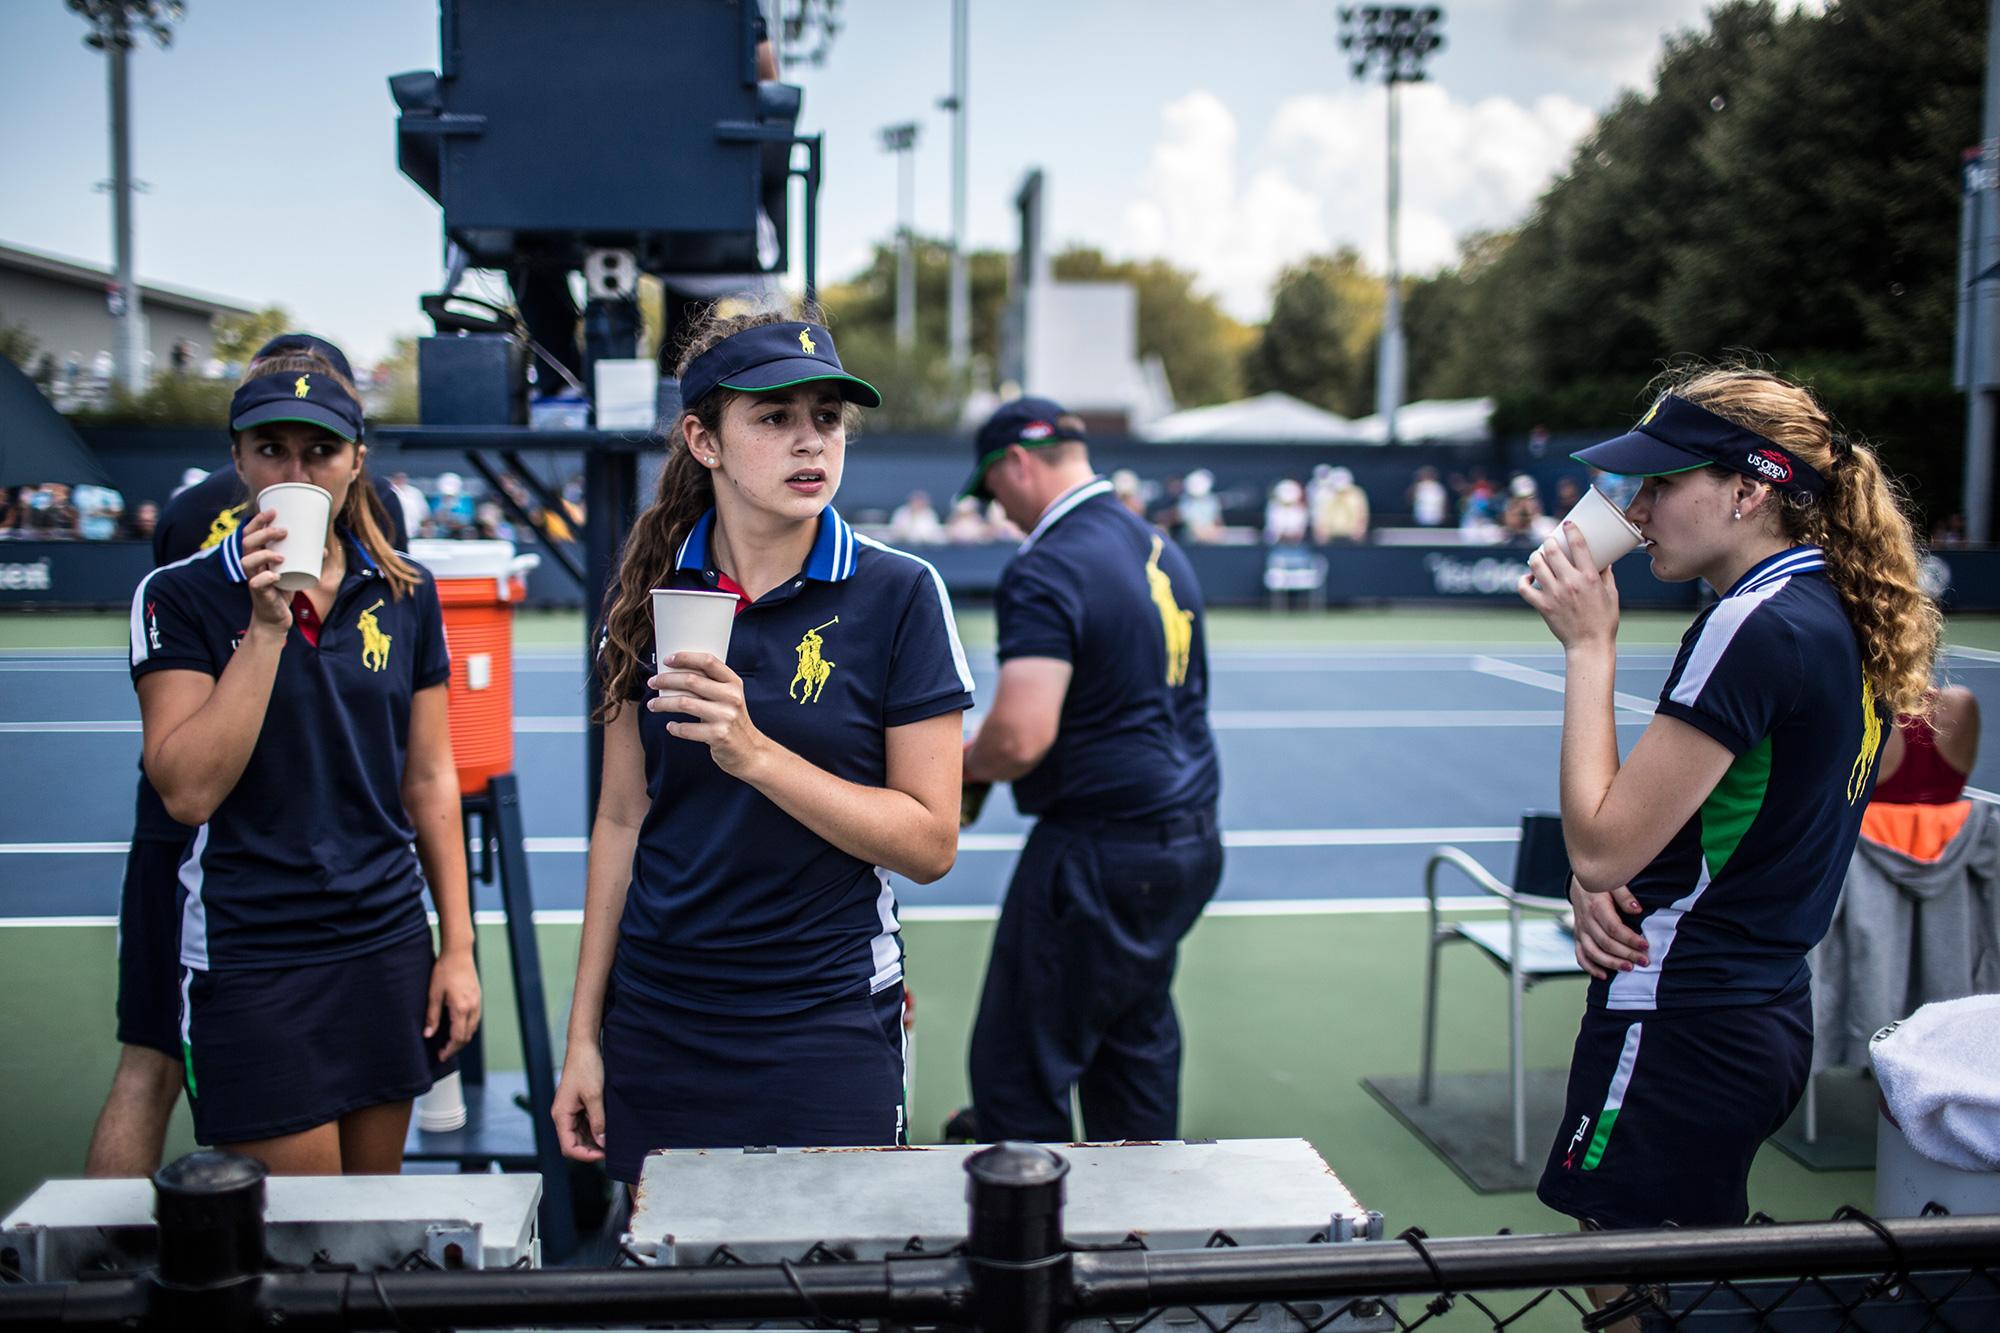 The players weren't the only ones on Court 15 who needed to hydrate throughout the day.